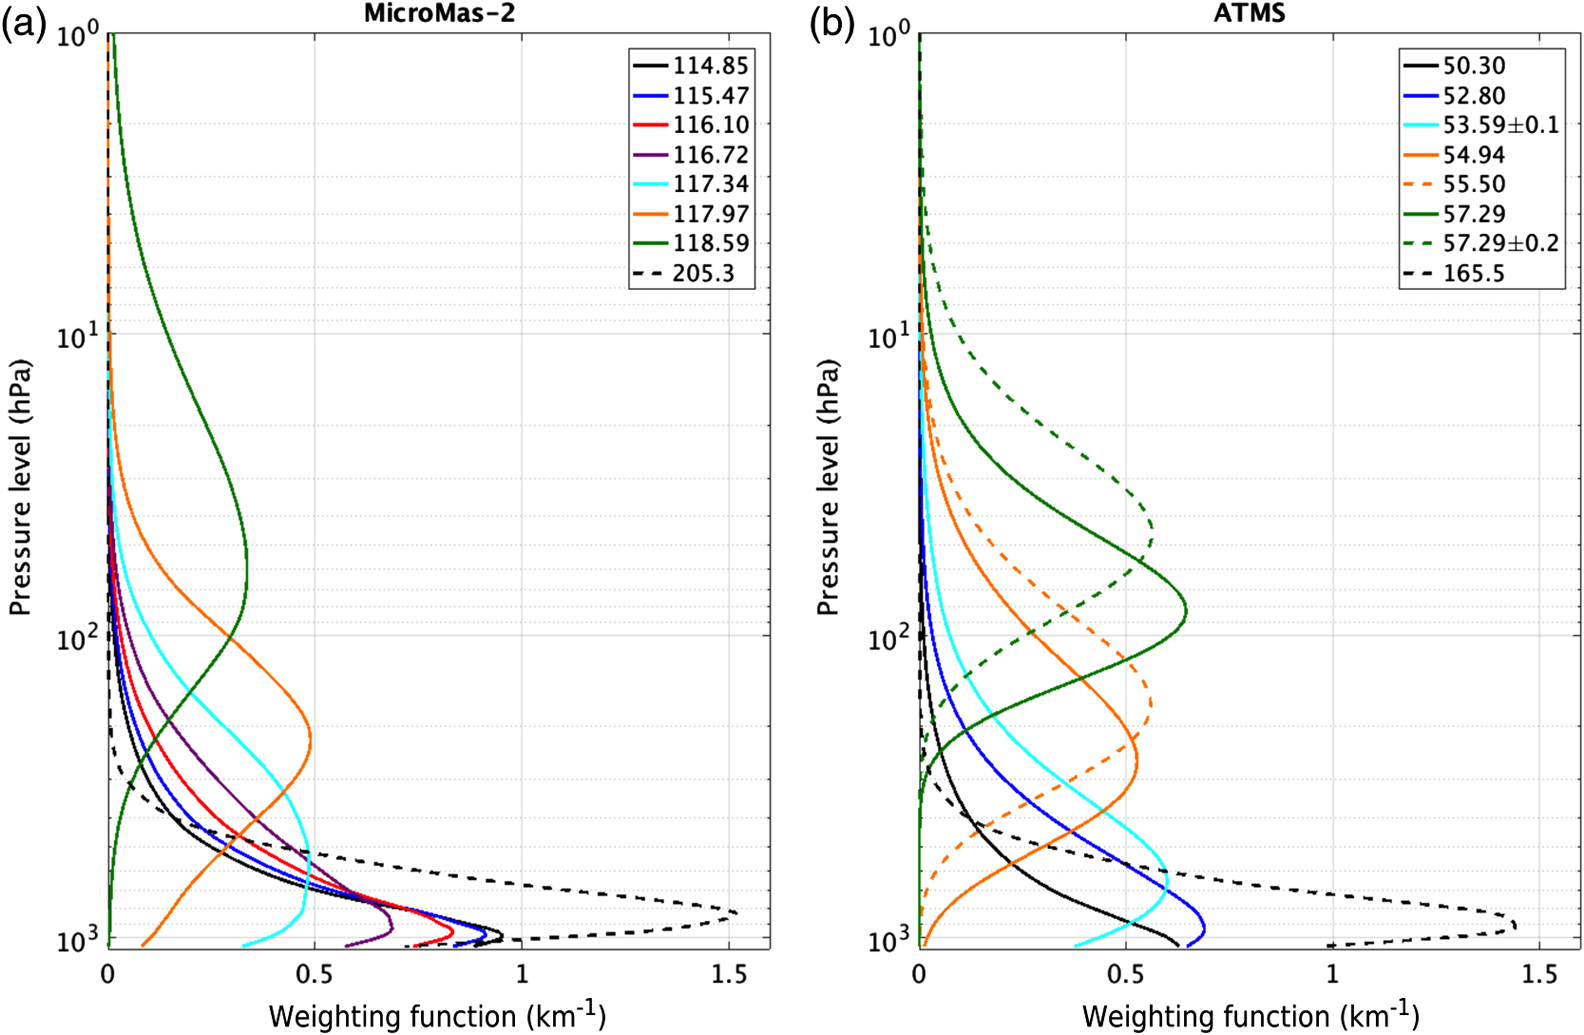 Global analysis and forecast impact assessment of CubeSat